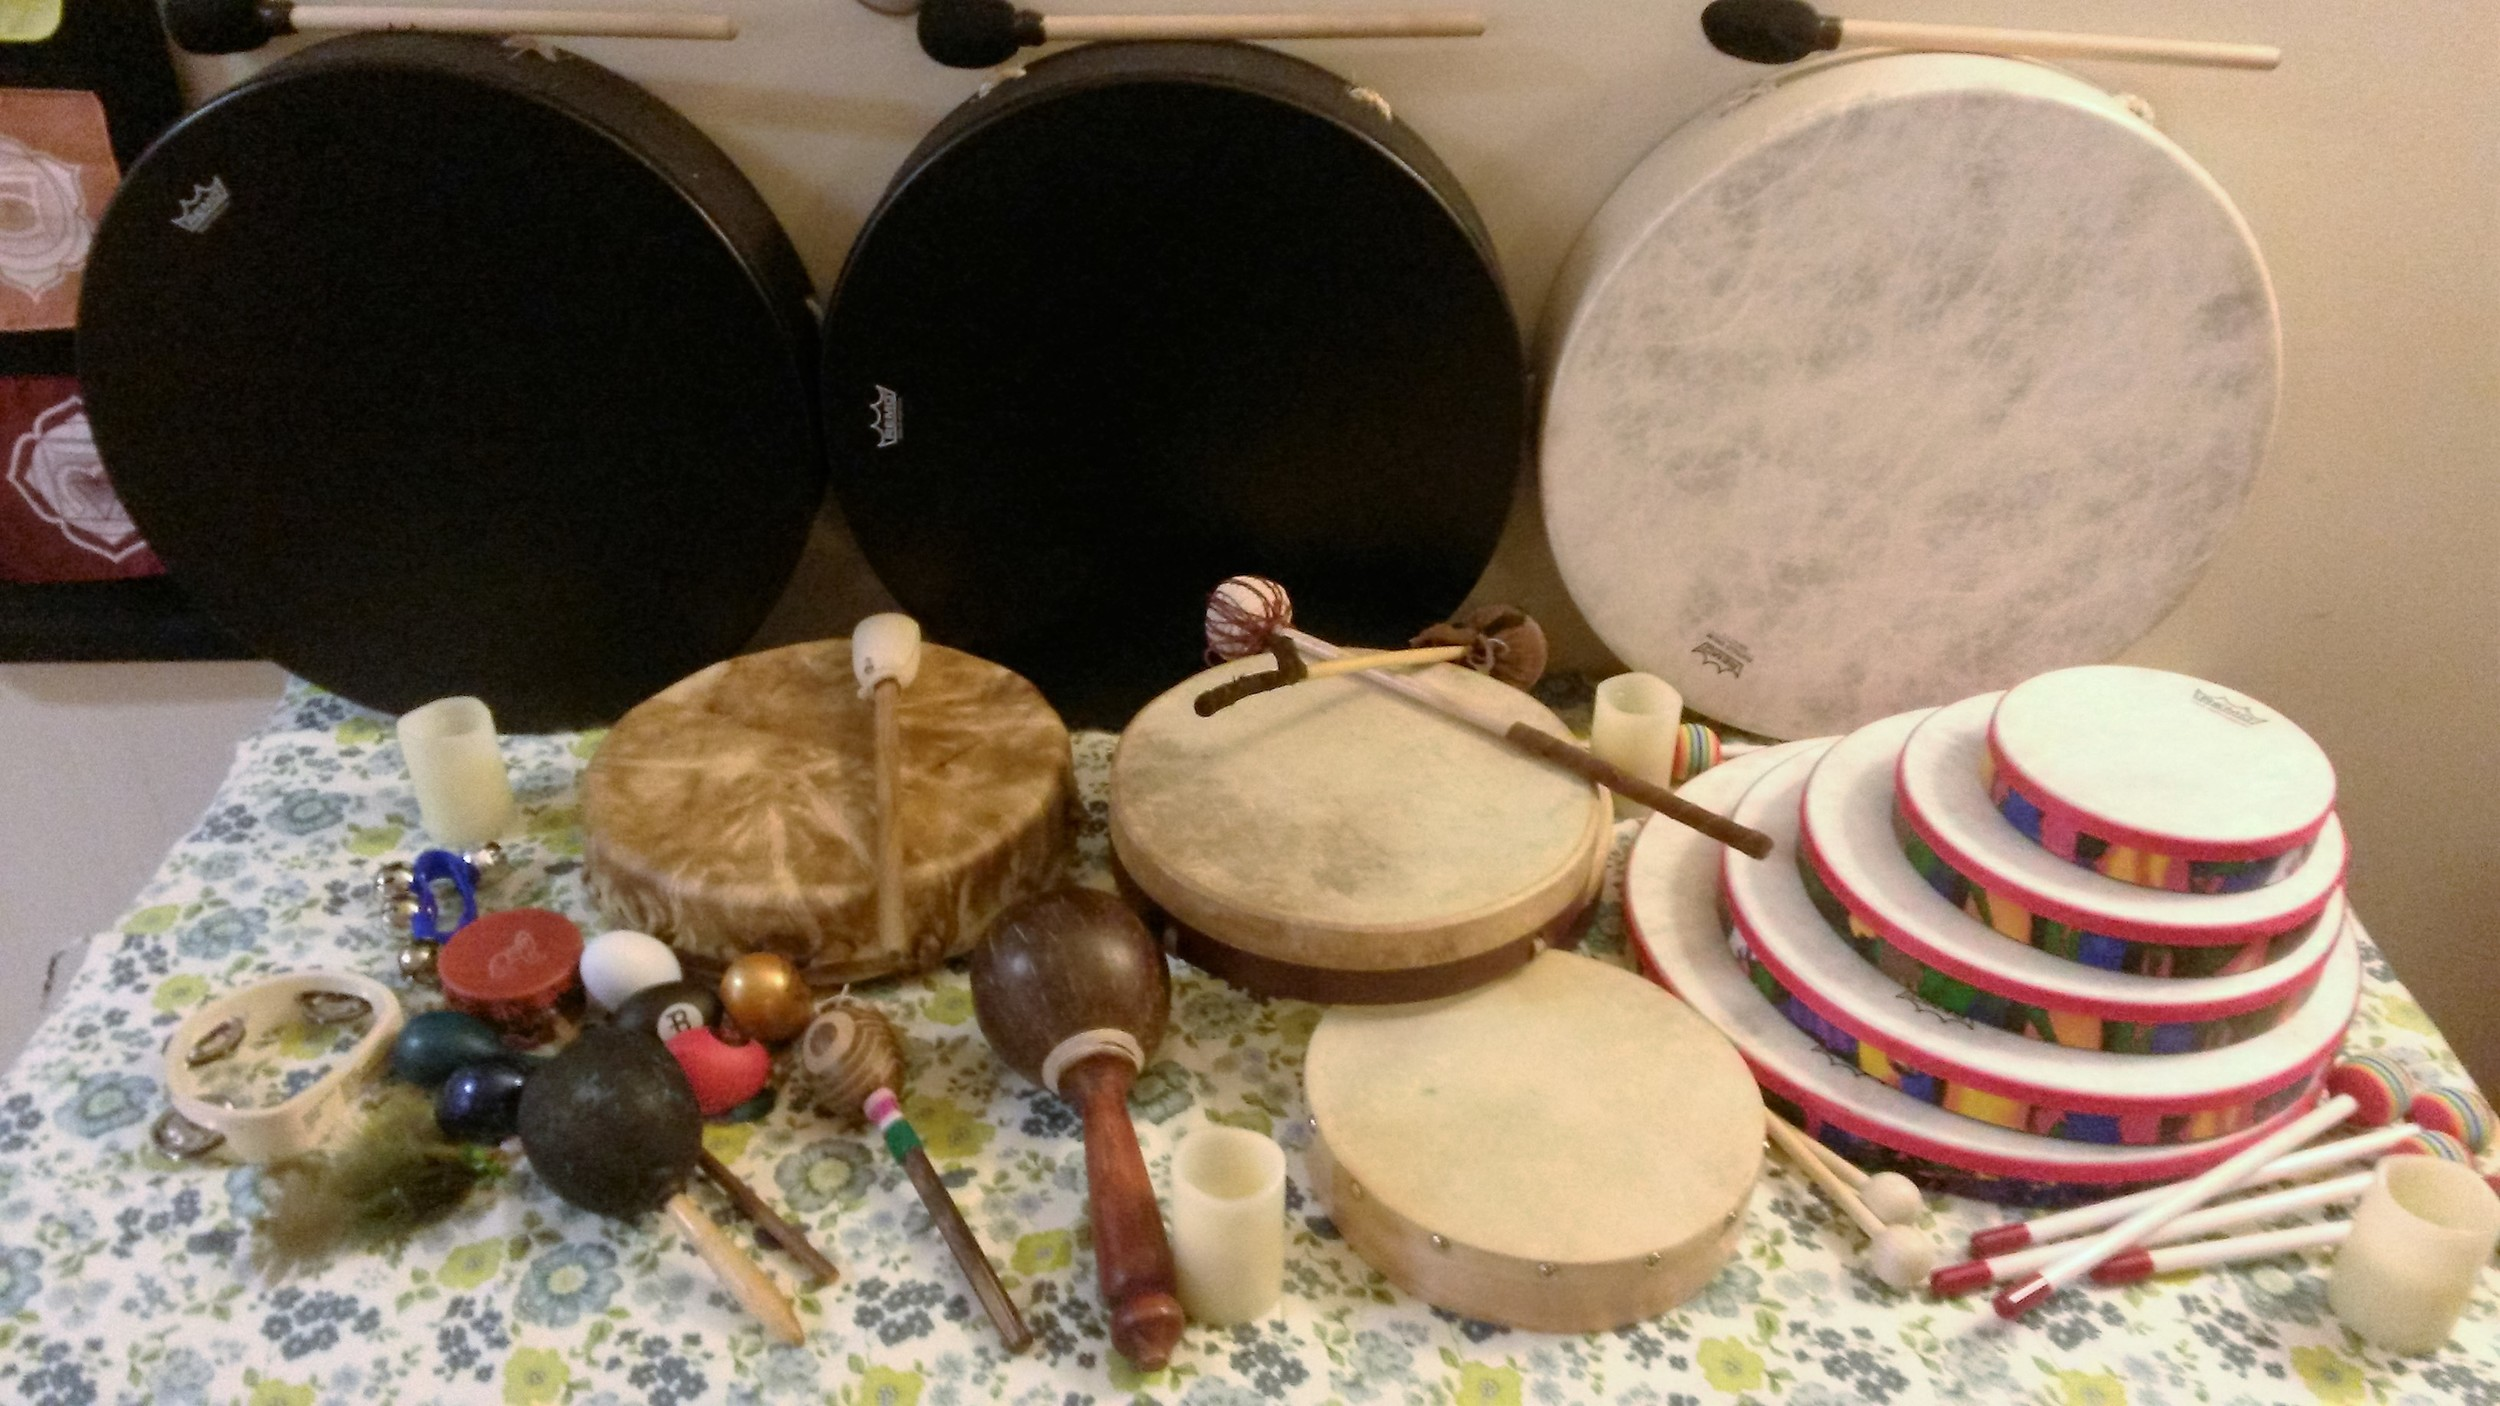 Don't have a drum or rattle? No worries! We have spares you can borrow for the evening.